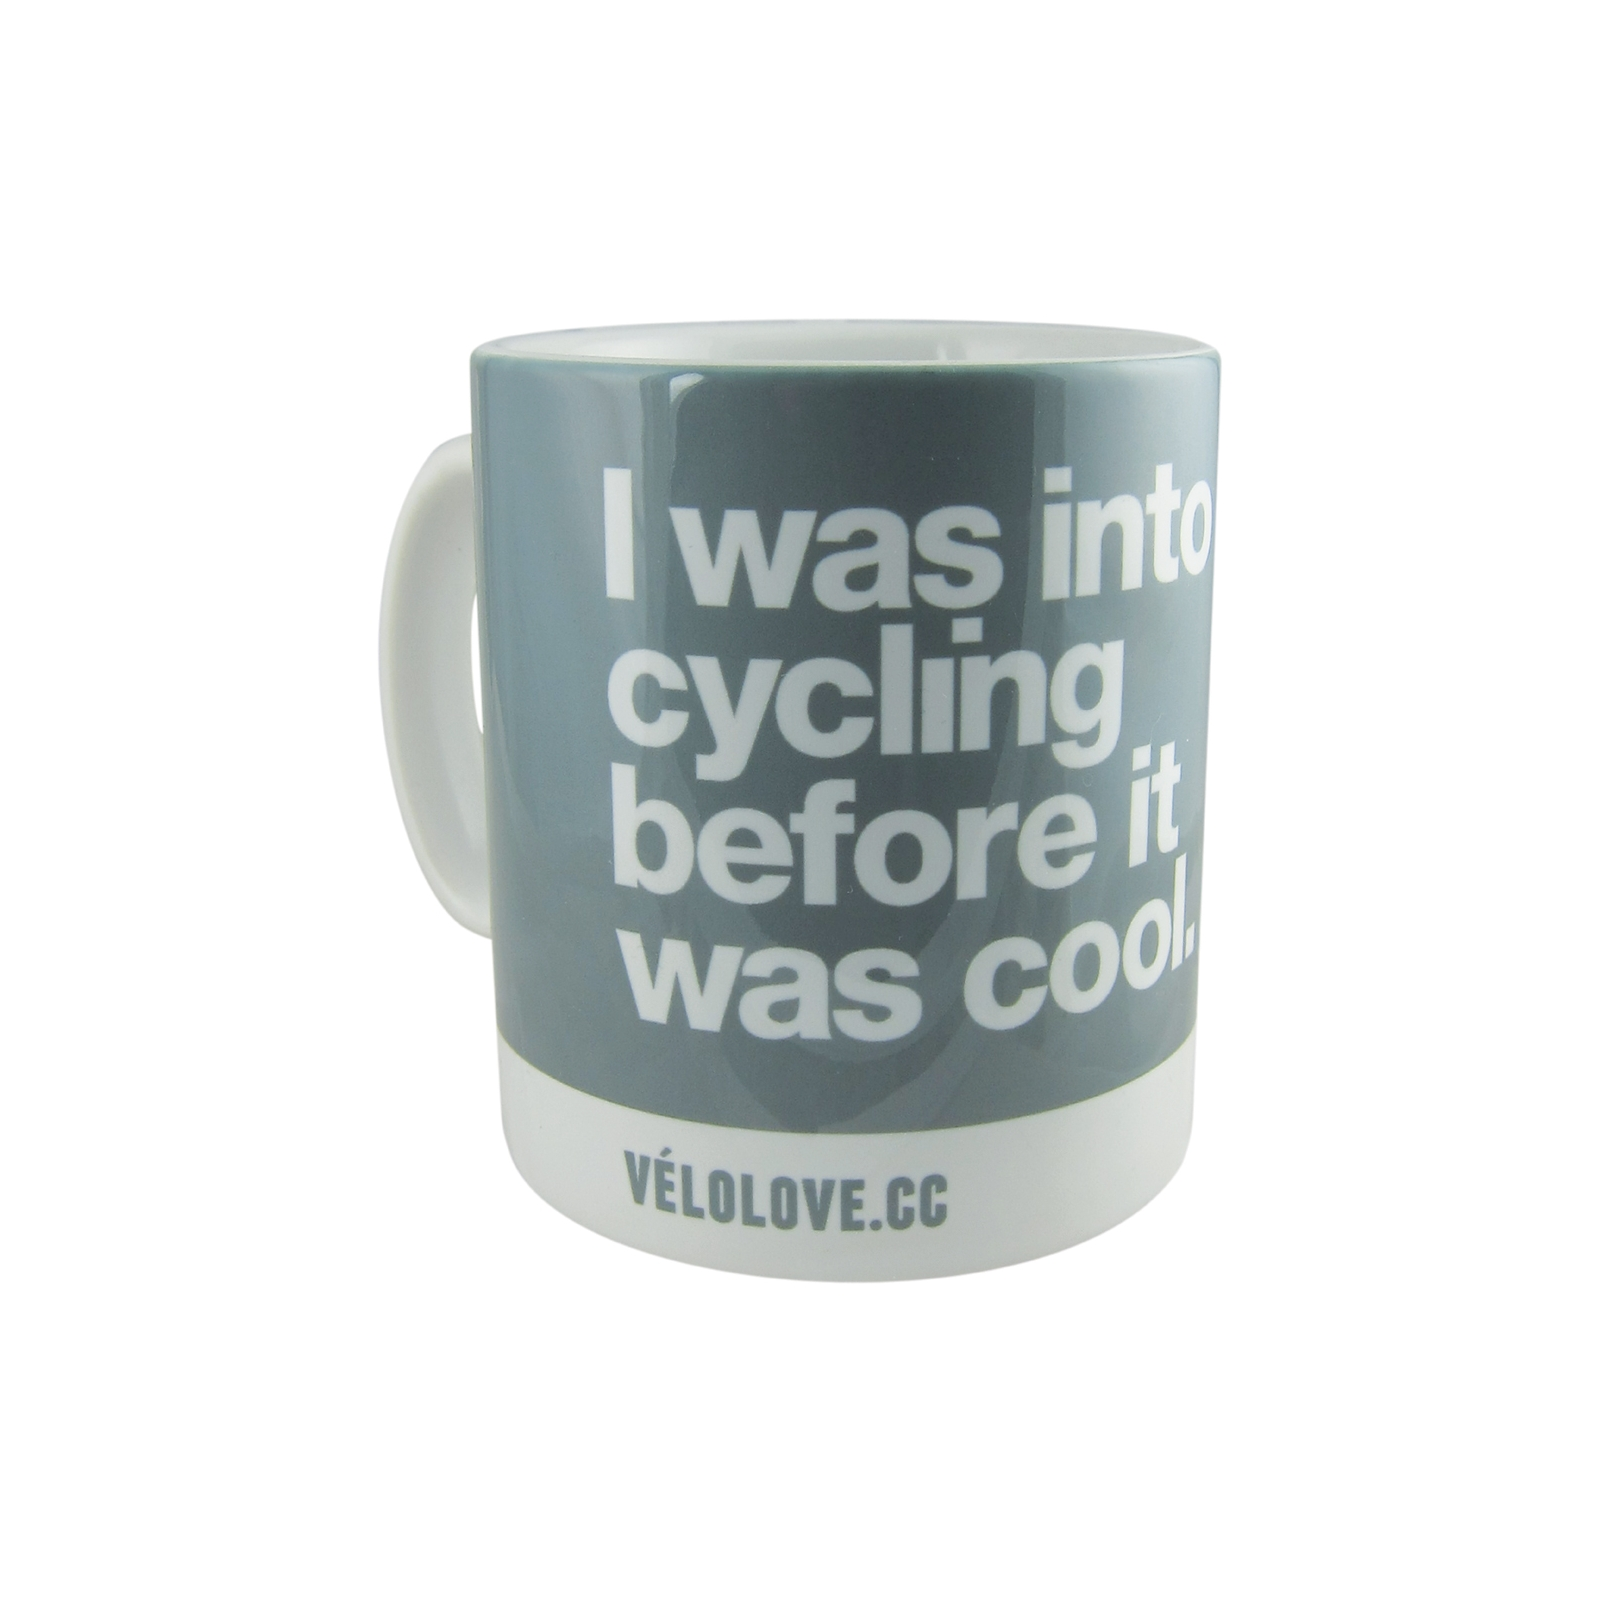 Velolove I was into cycling before it was cool Mug | item_misc